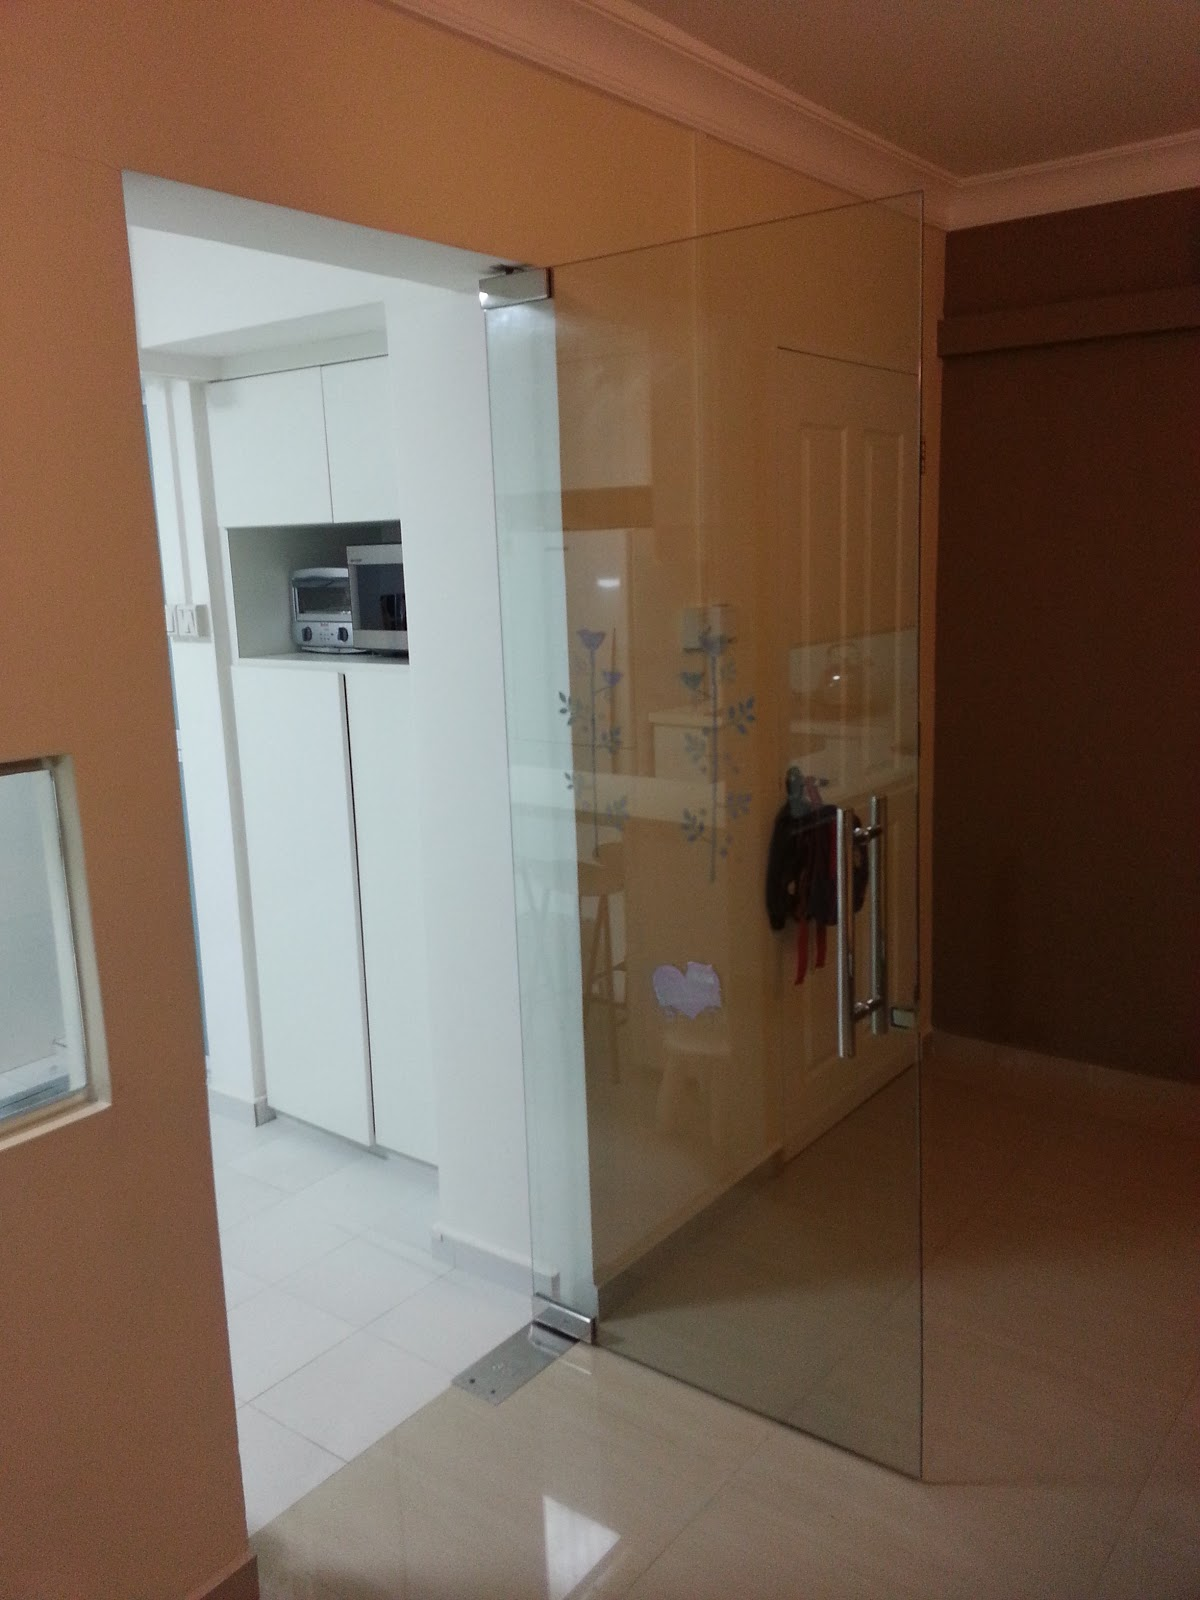 Our Hdb Flat Renovation In 2009 Glass Door And Kitchen